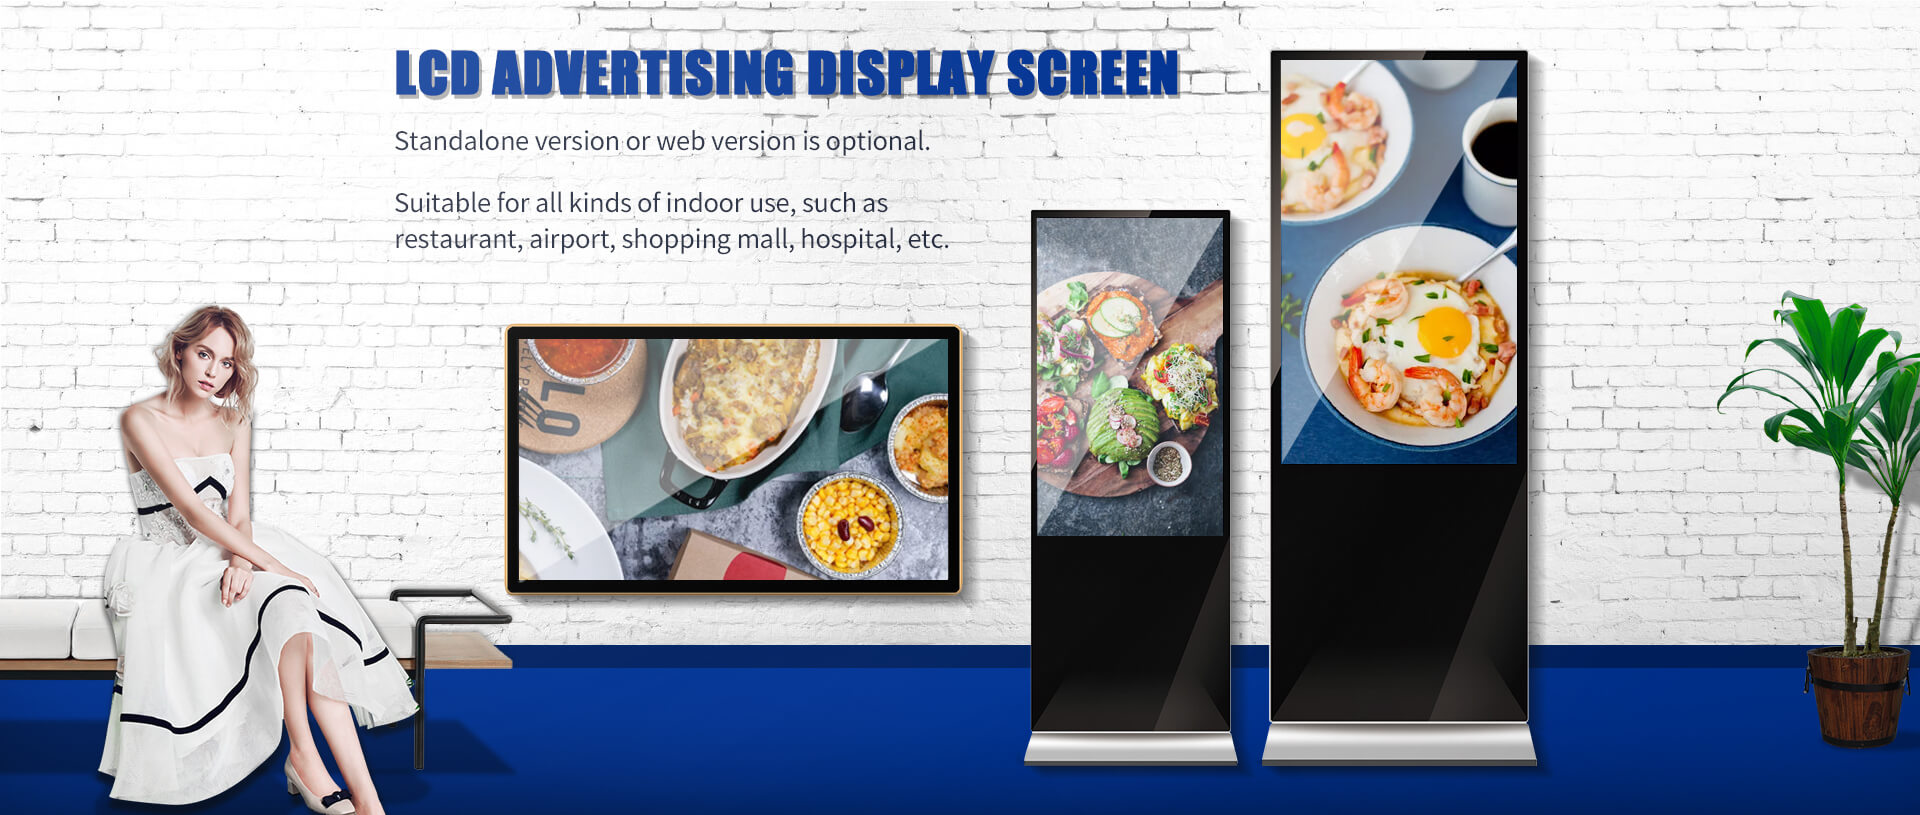 Digital Advertising Screen